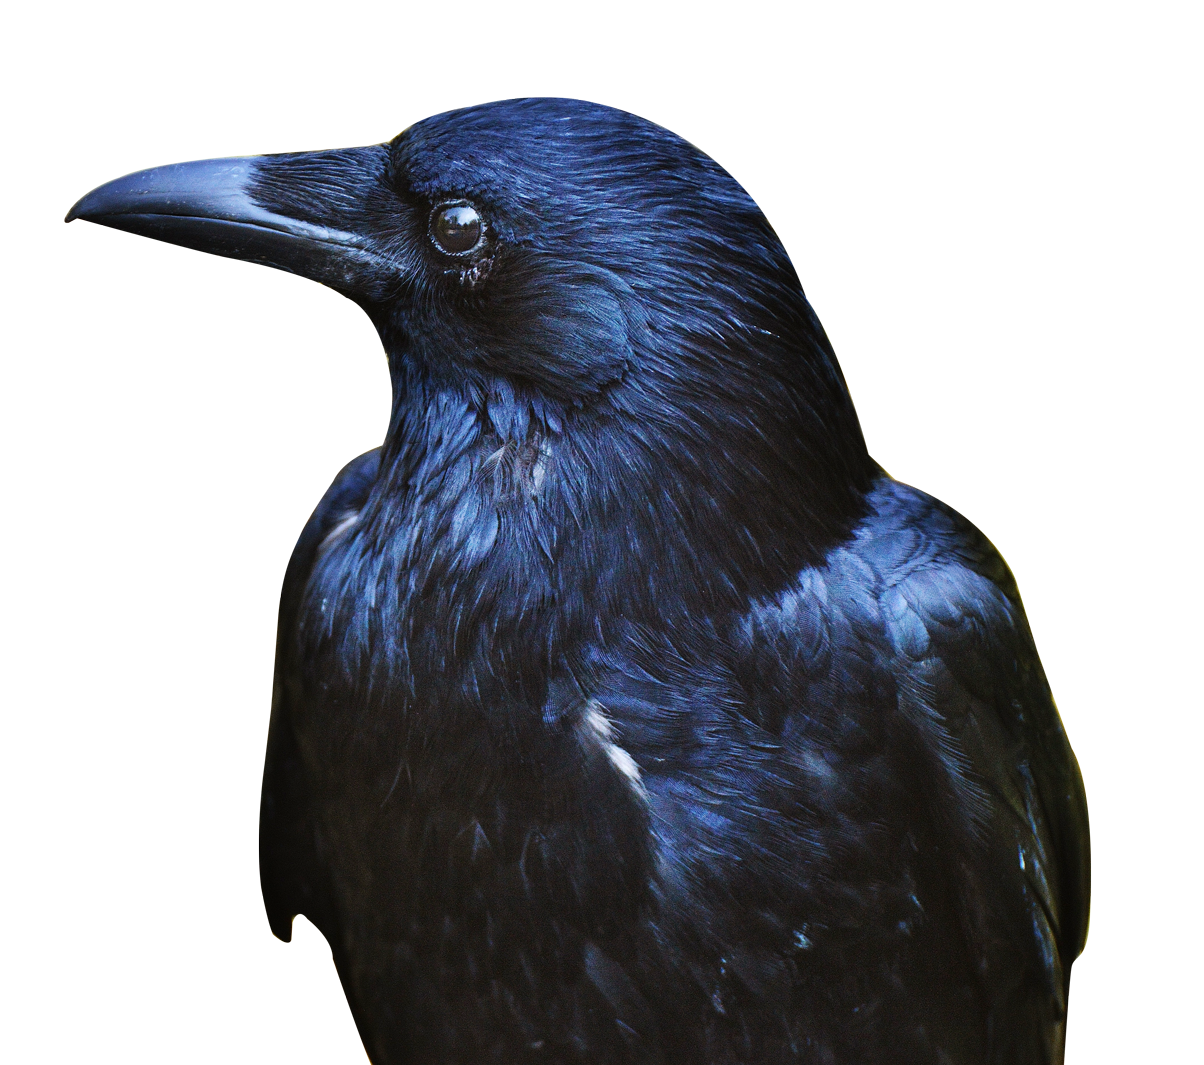 Crow Black Png Image Crow Photos Crow Png Images